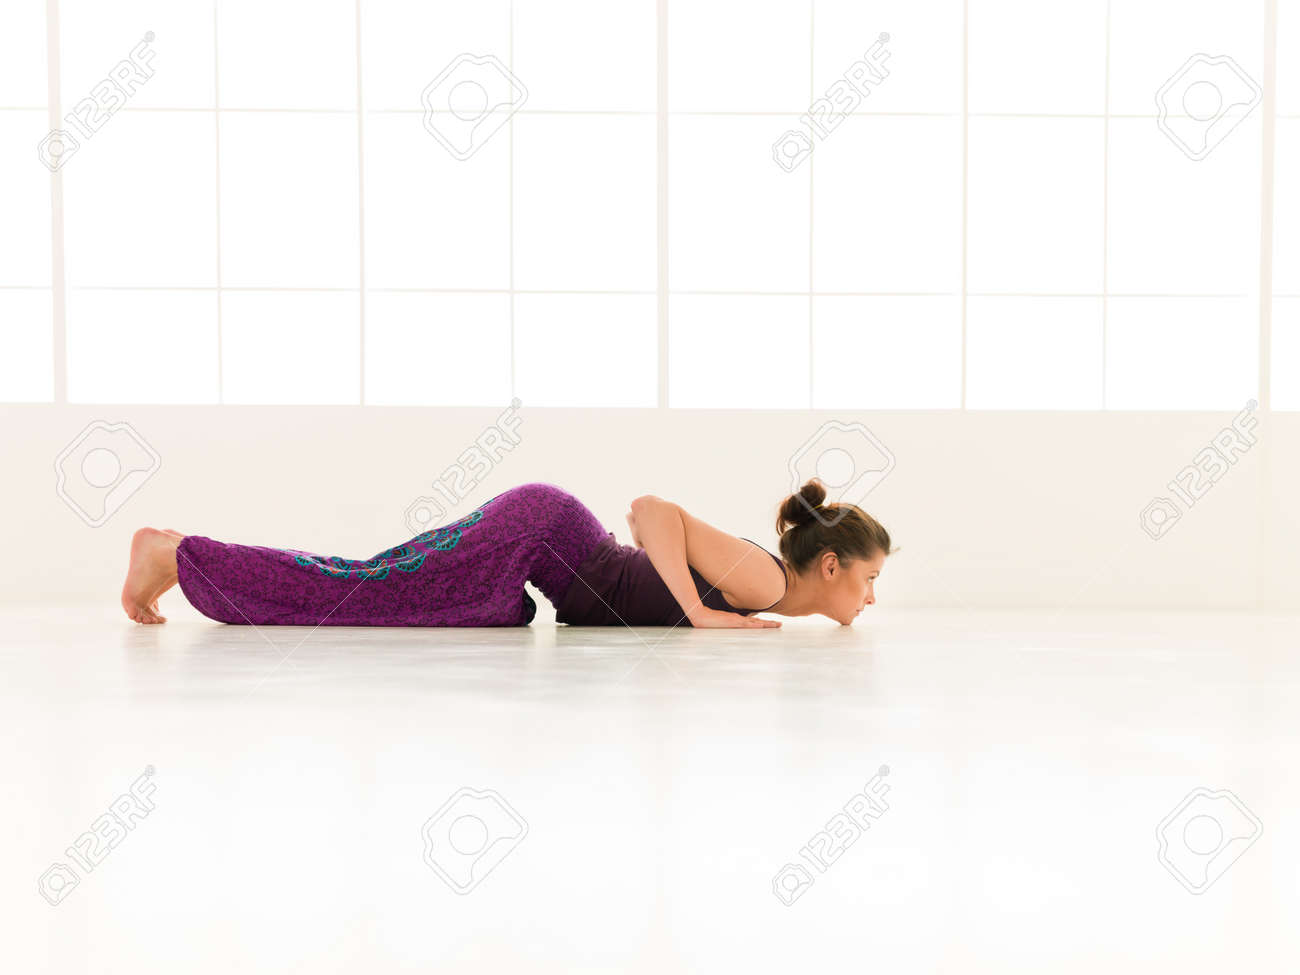 Young Girl Demonstrating Advanced Yoga Pose Full Body View Stock